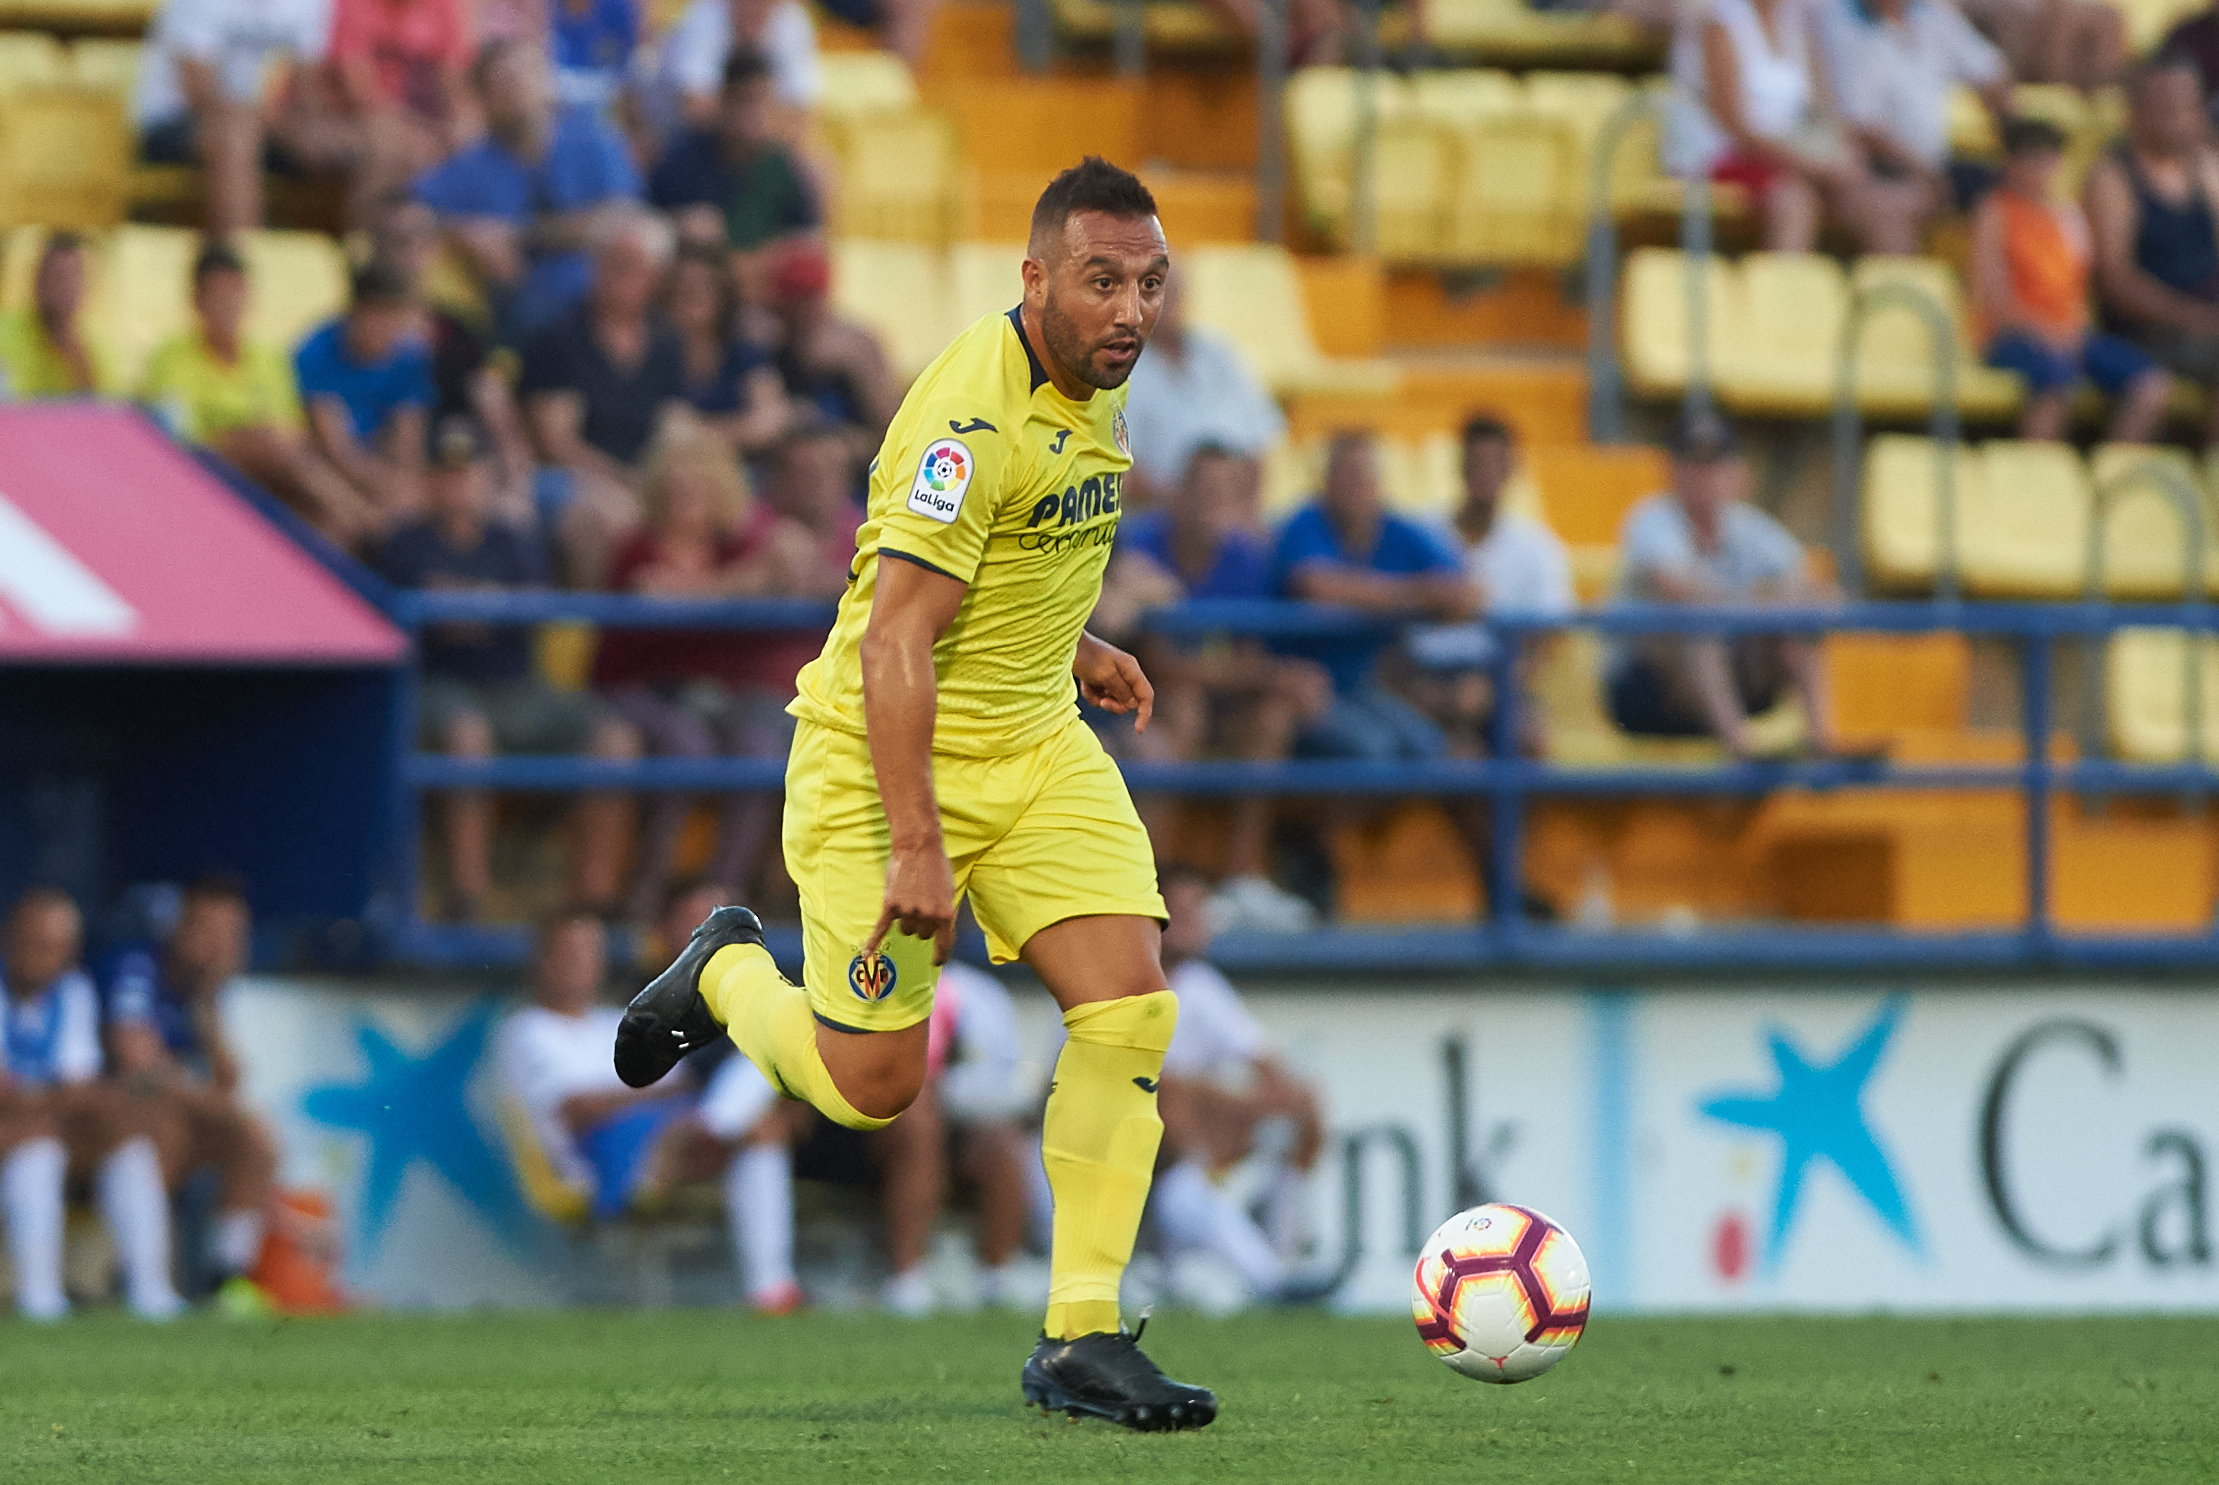 Magician unveils Santi Cazorla at Villarreal in utmost freaky  fashion